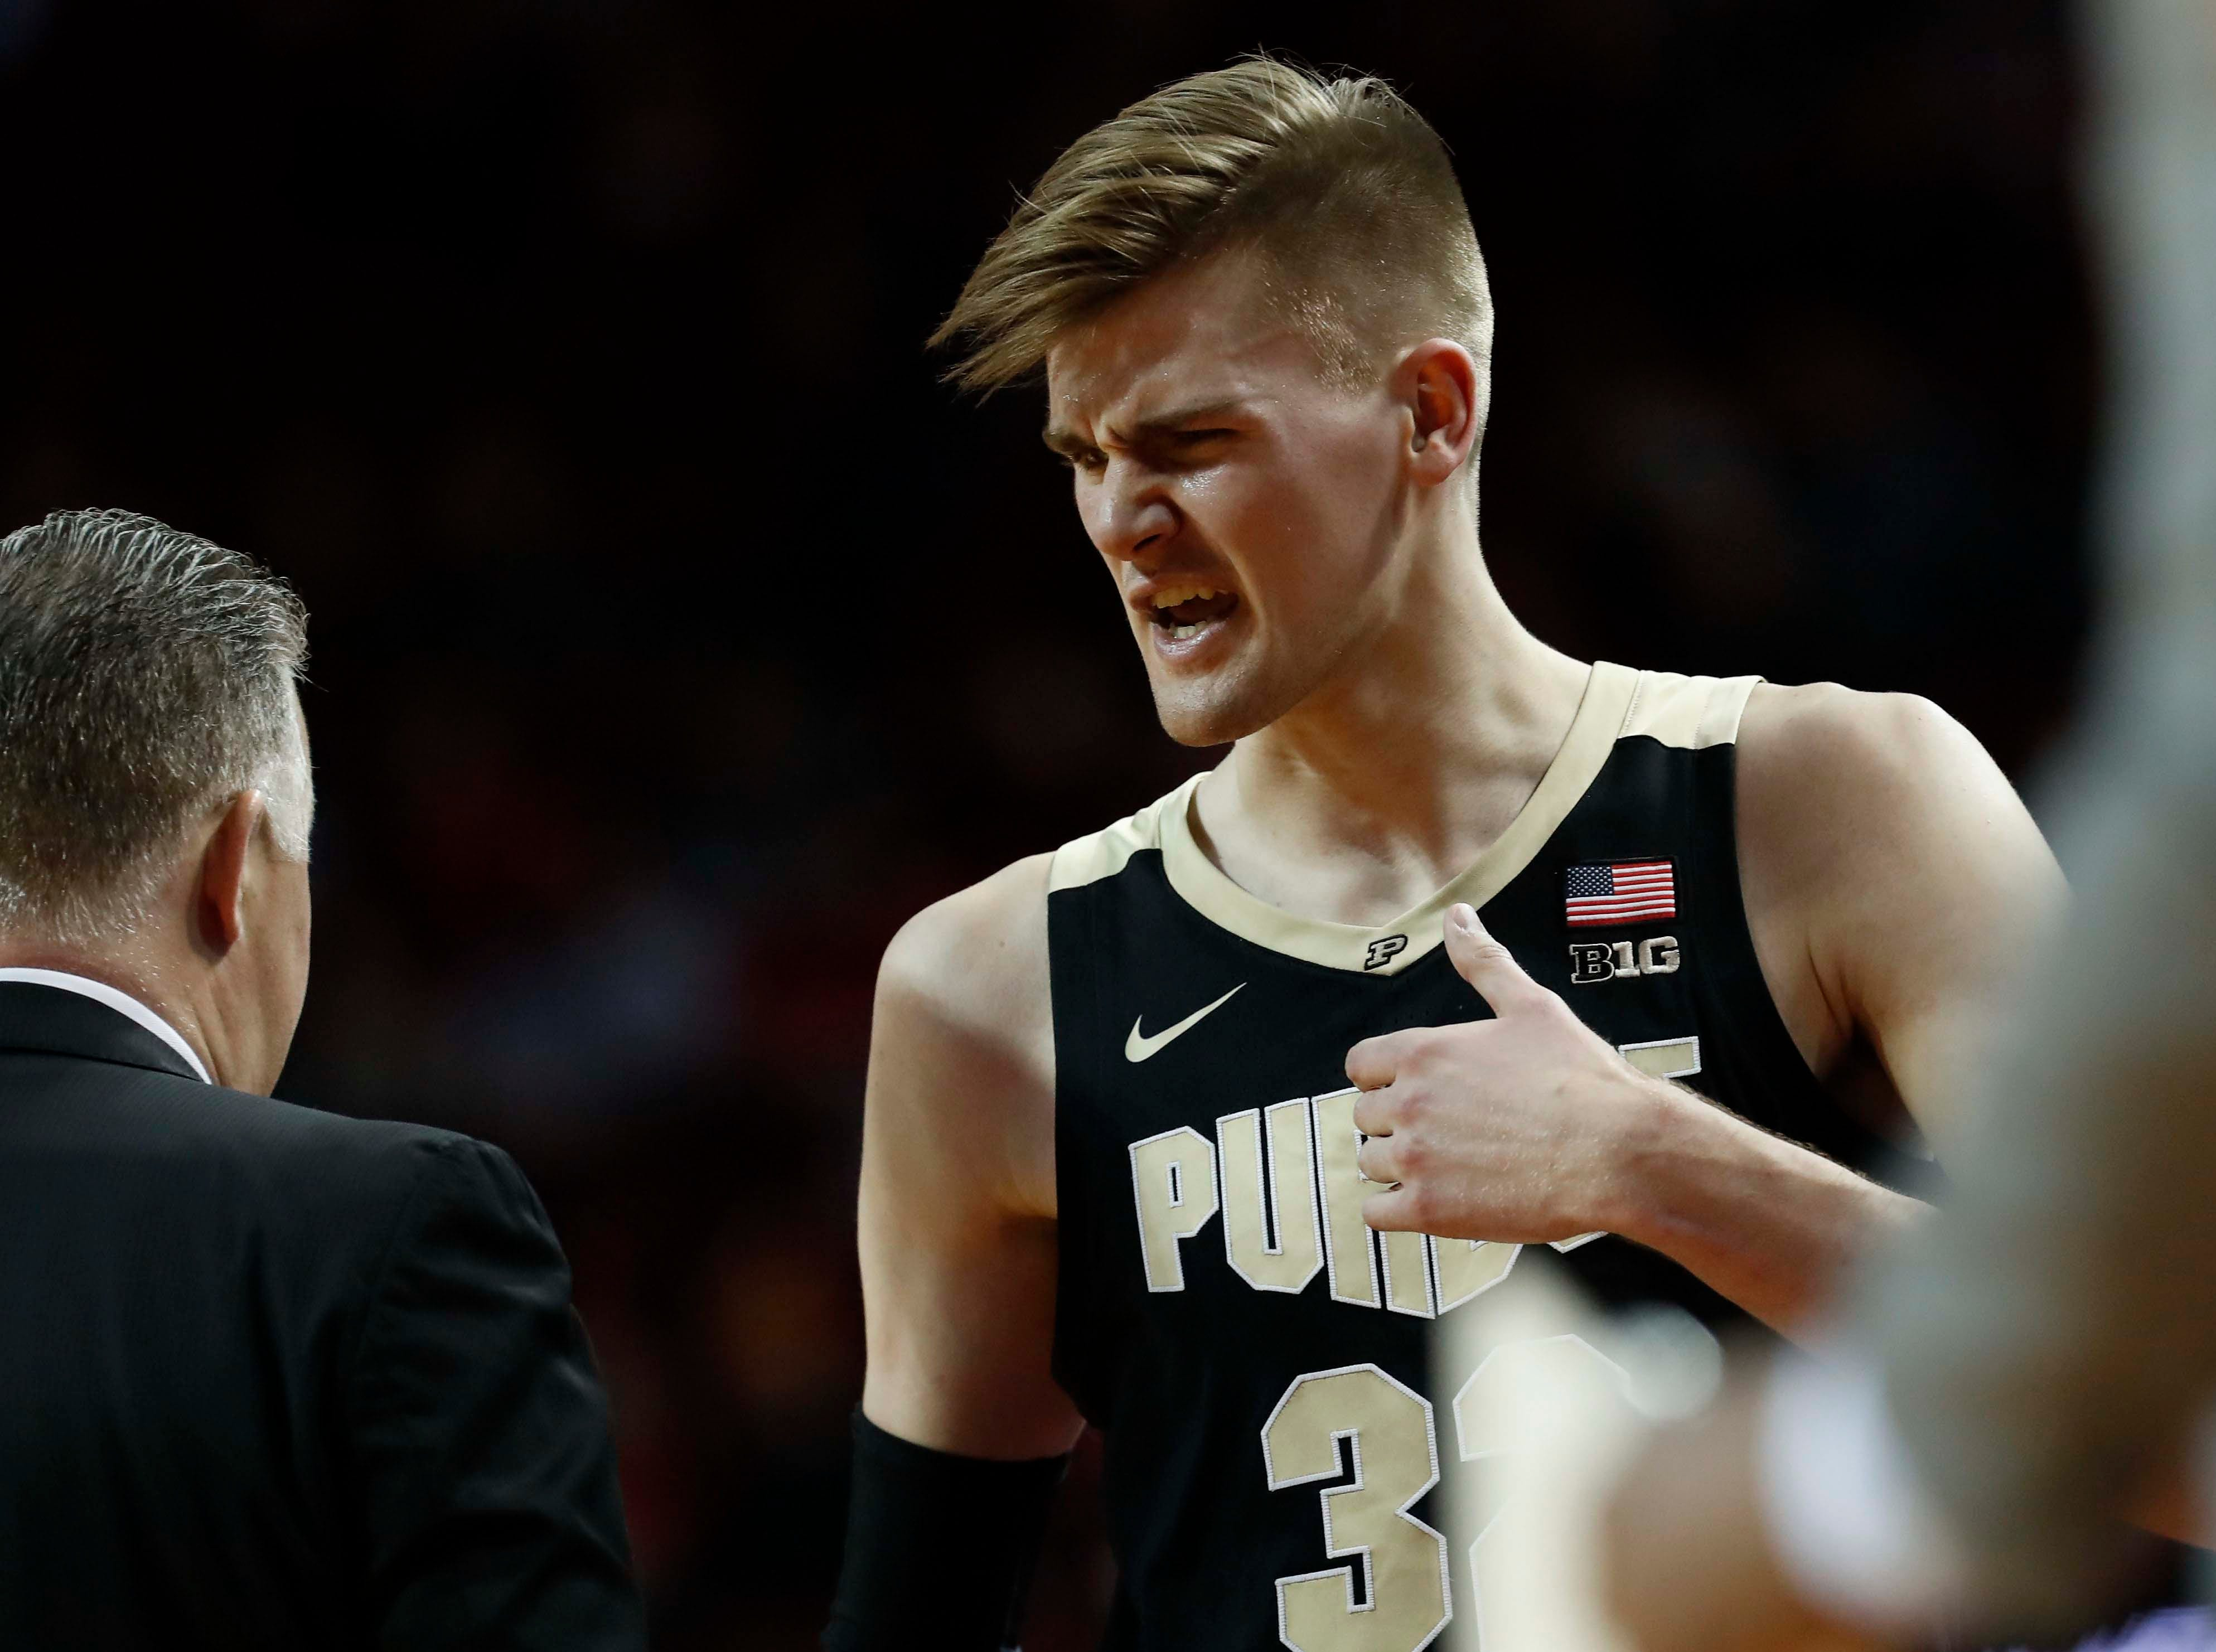 Purdue Boilermakers center Matt Haarms (32) reacts as he comes off the court during the game against the Nebraska Cornhuskers in the second half at Pinnacle Bank Arena.